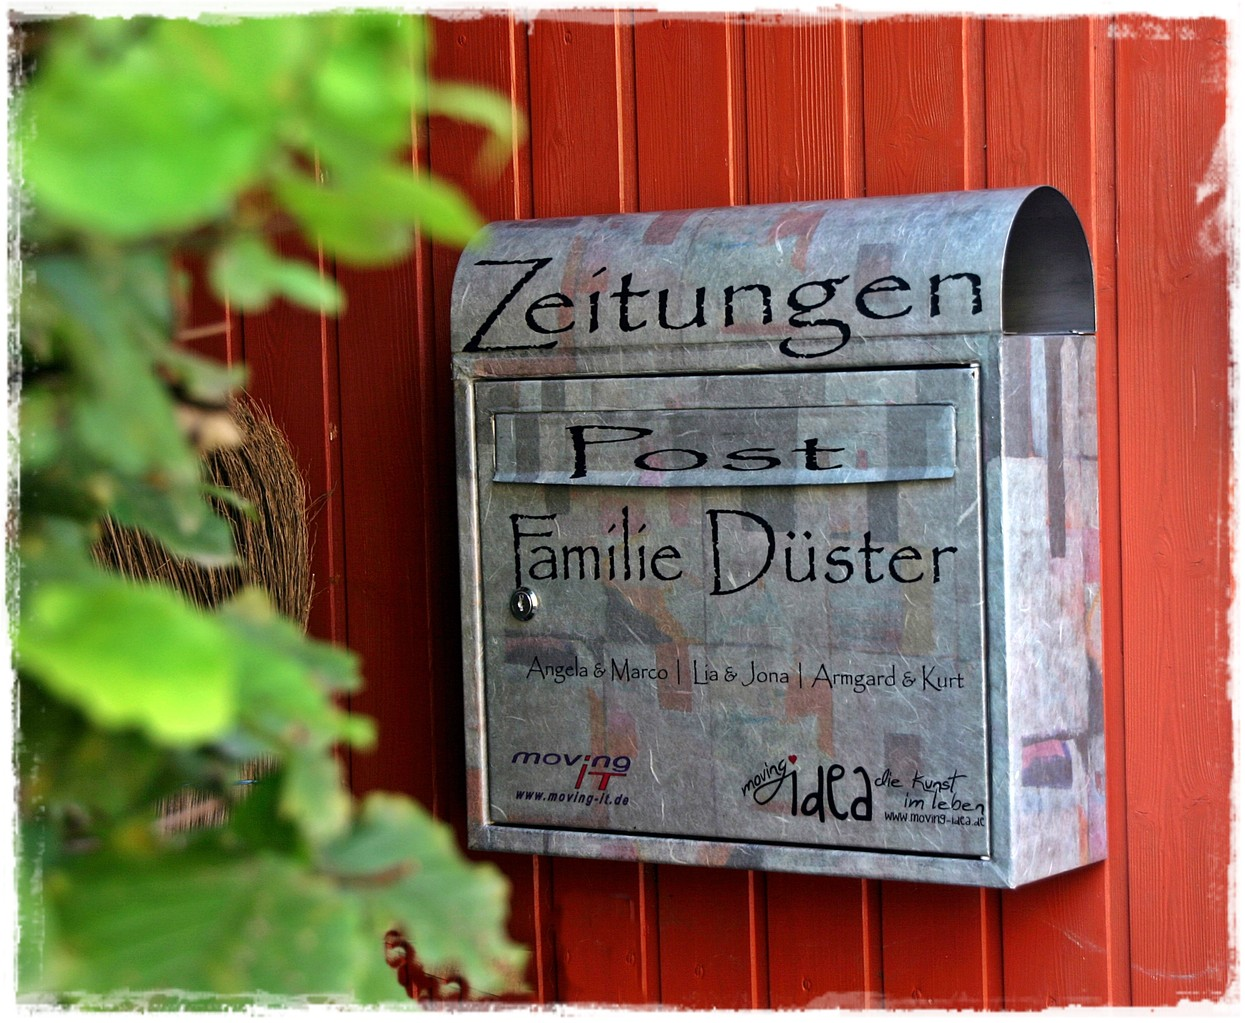 Personalisierte Hausnummernschilder | Briefkästen | Gartenstecker - moving idea